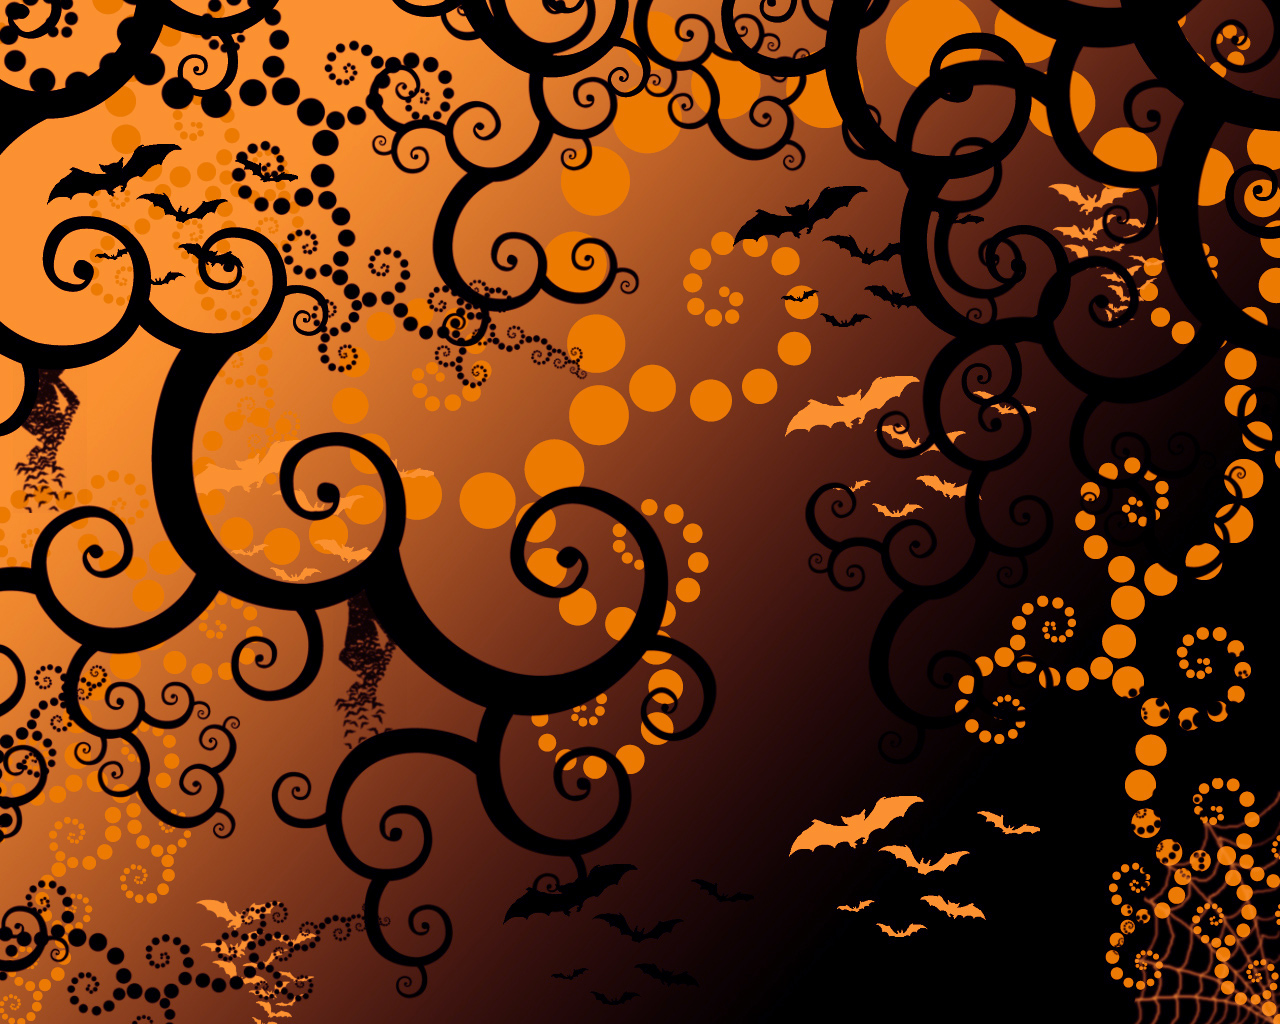 Fun Halloween Wallpaper